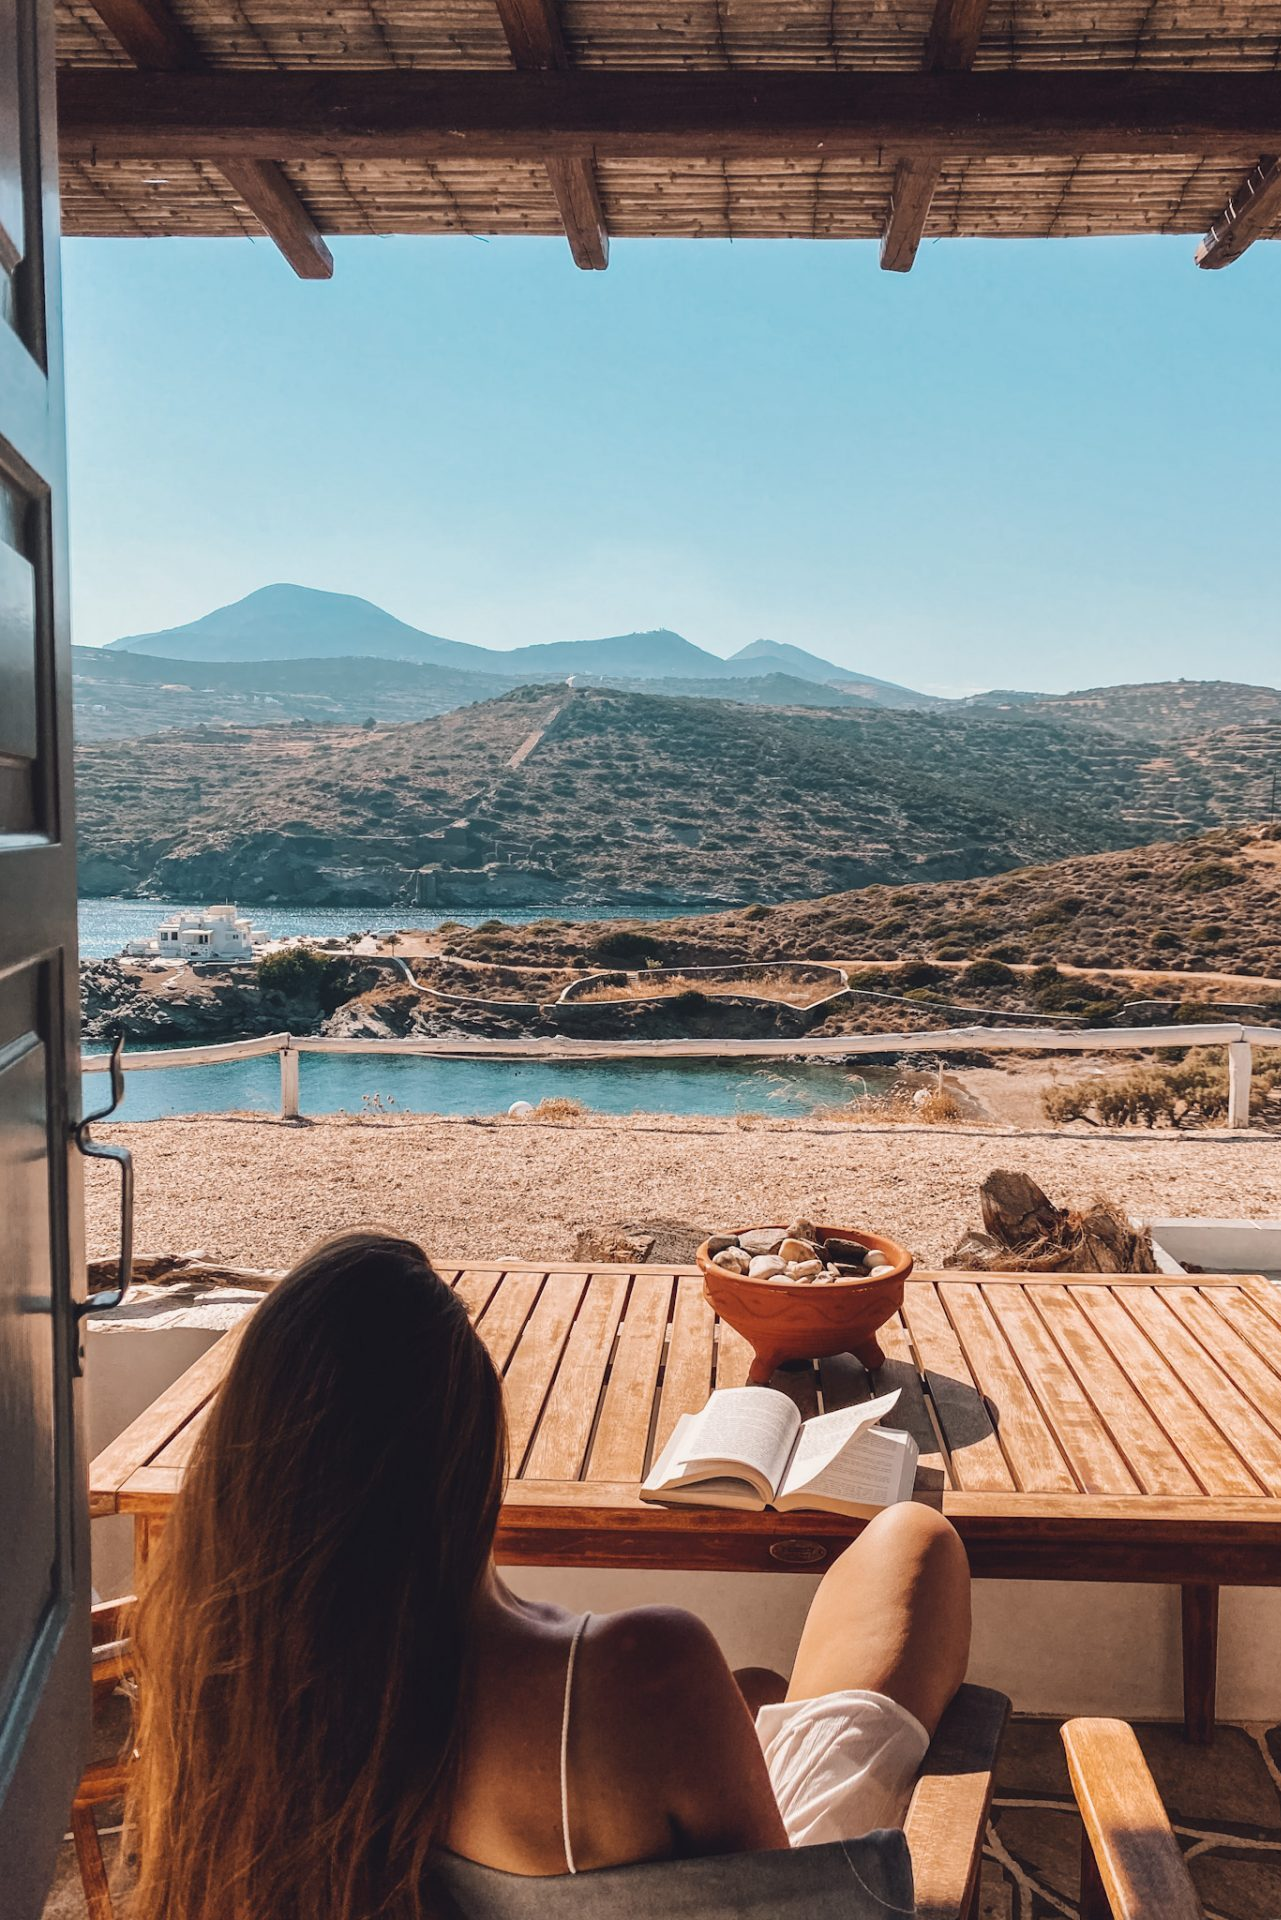 Hotel with a view at Sifnos, Greece